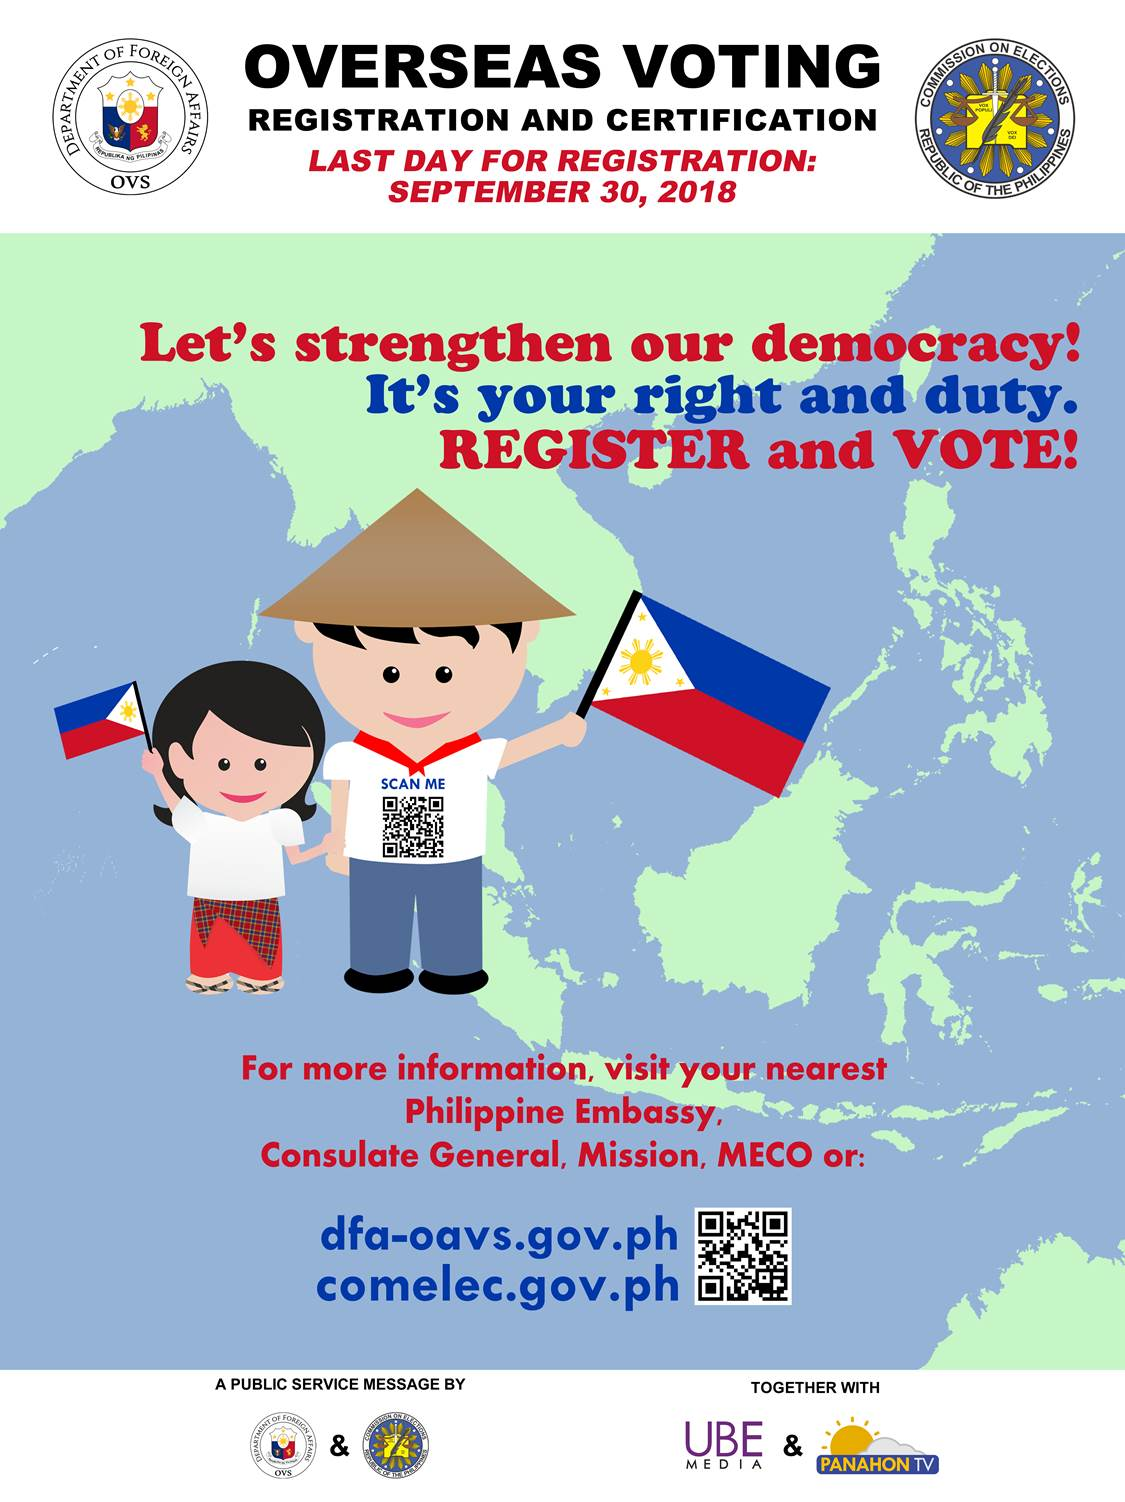 Christmas gift ideas for him philippines embassy